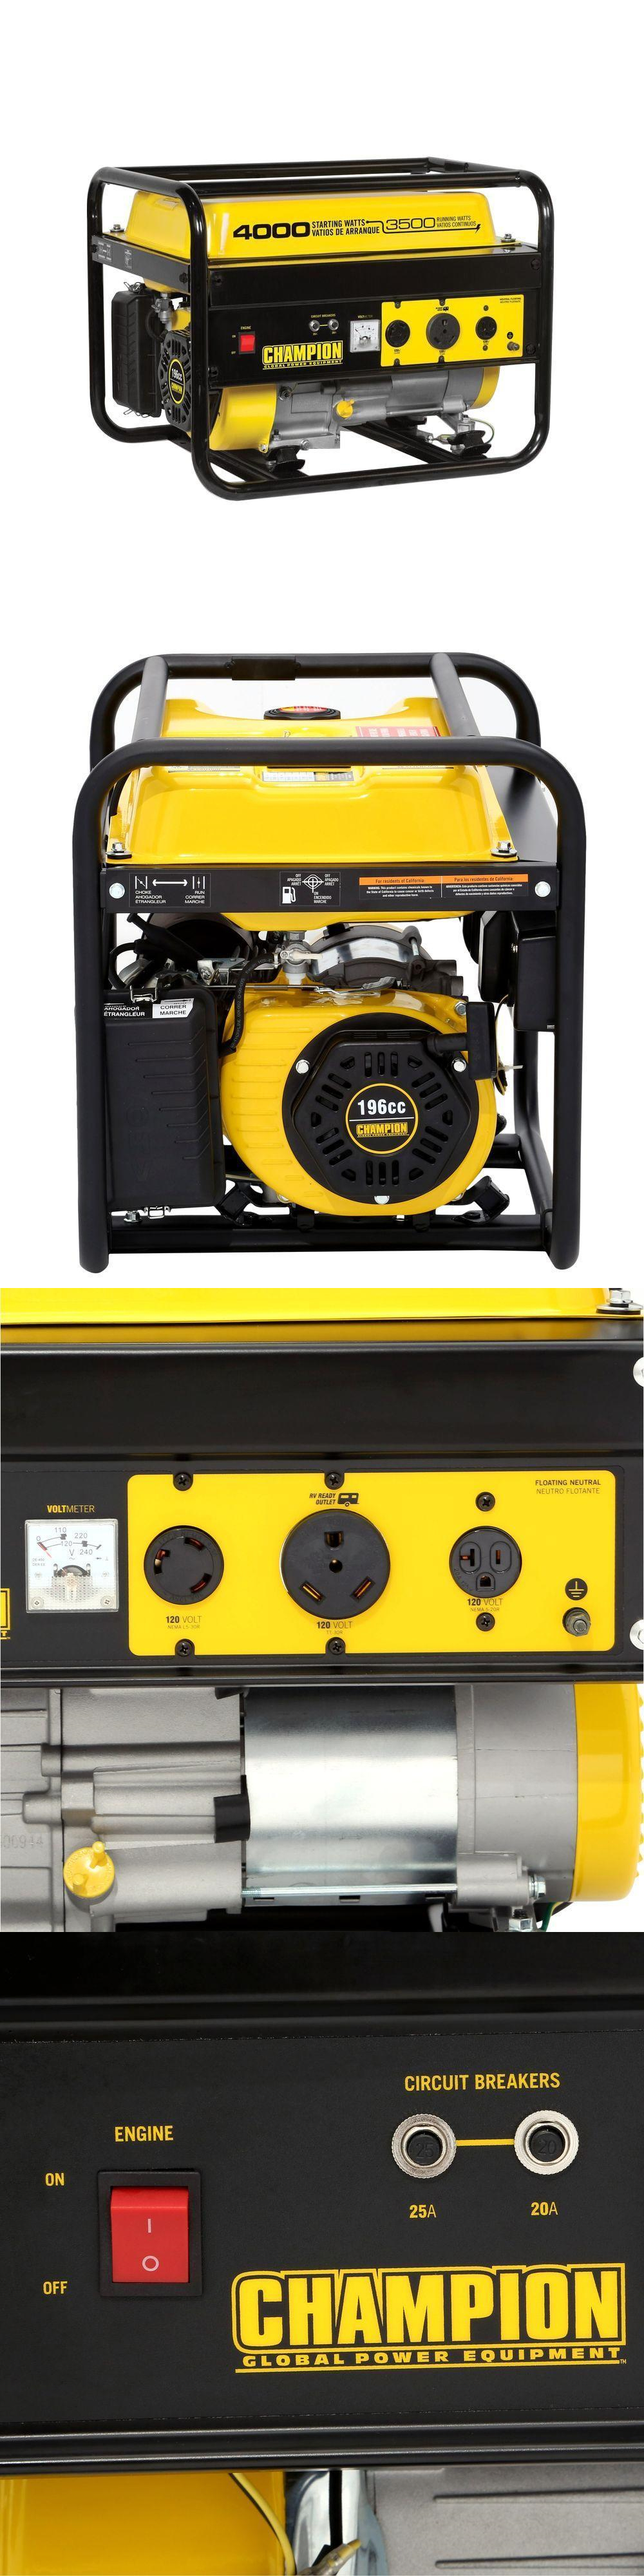 Generators 33082 Champion Power Equipment Portable Generator 3500 Circuit Breaker Ebay 4000 Watt Gas Recoil Rv 46596